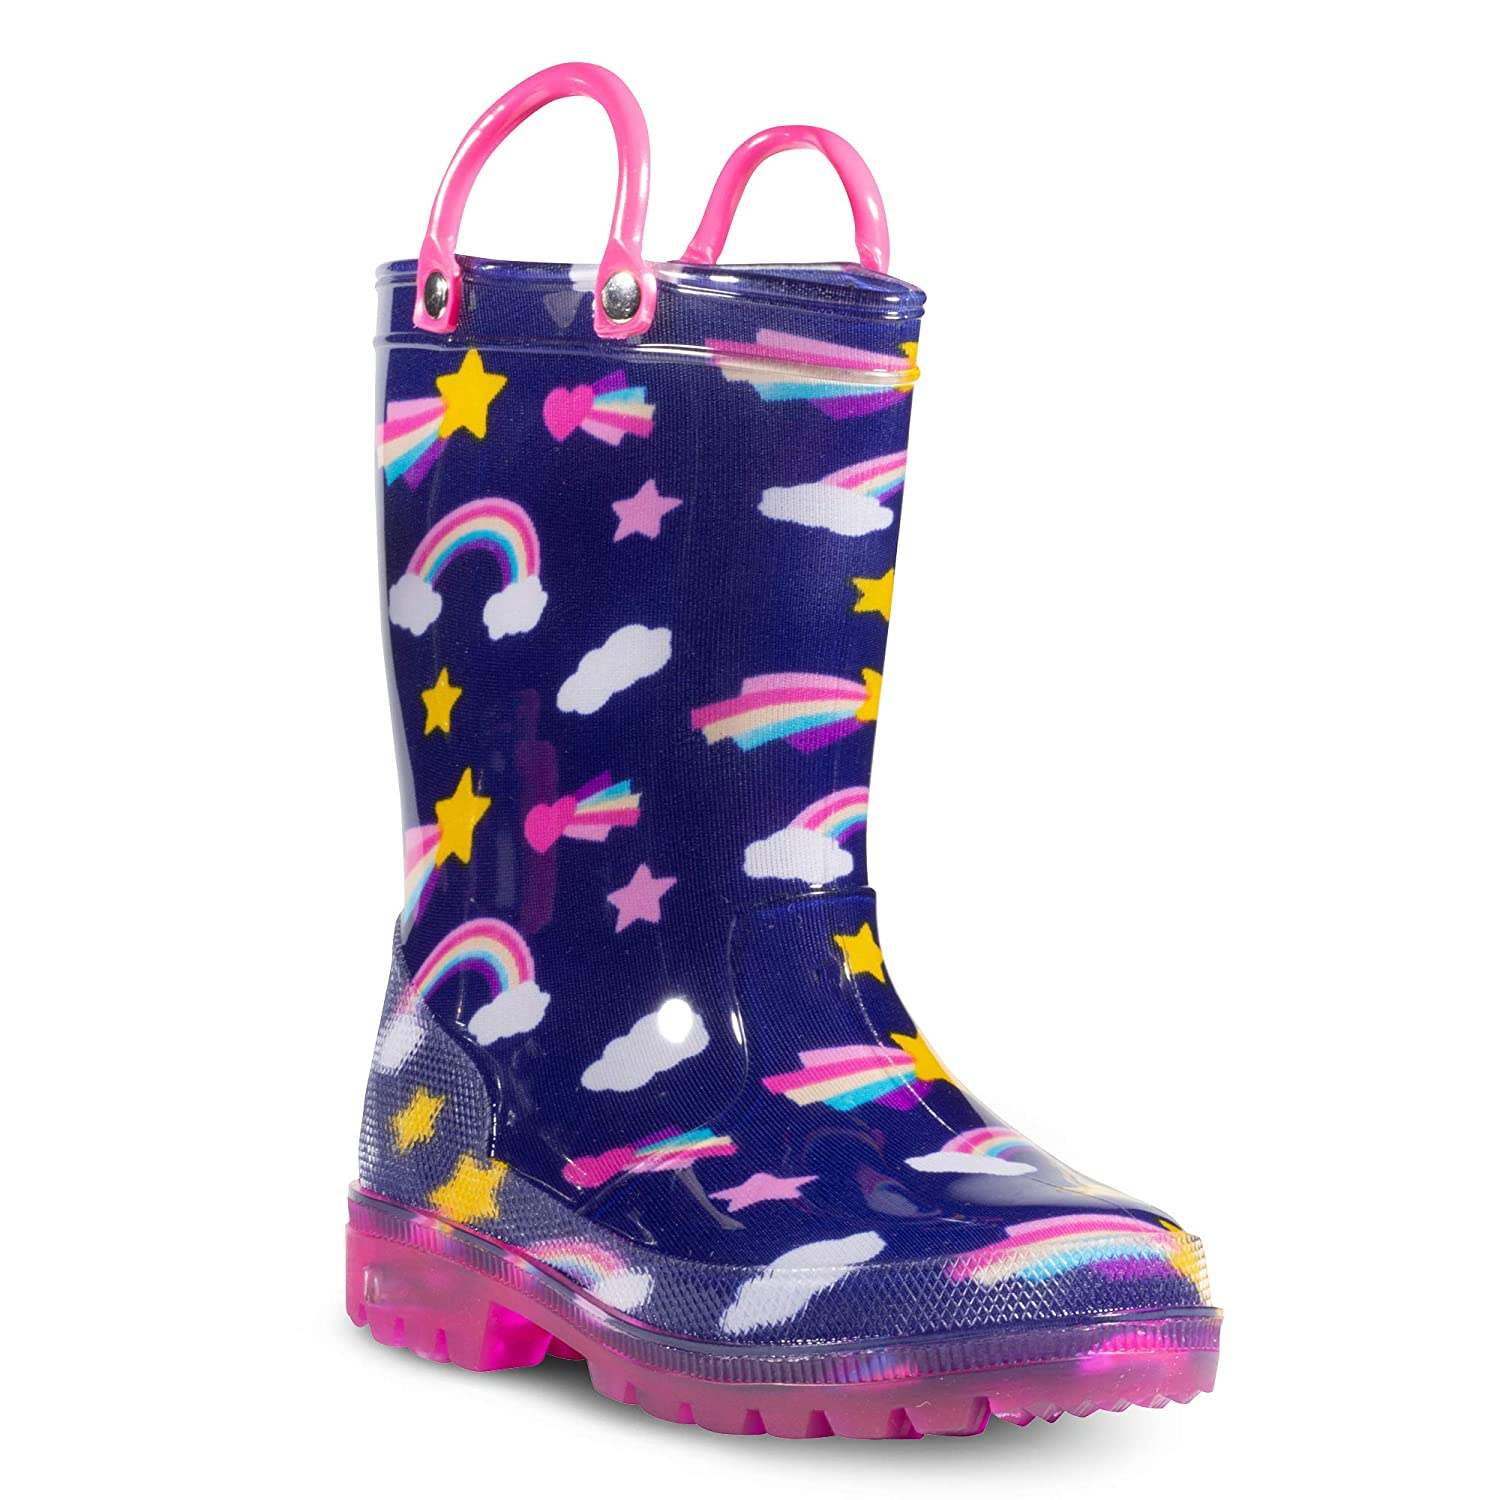 6a7fdc08 Amazon.com | ZOOGS Children's Light Up Rain Boots for Little Kids &  Toddlers, Boys & Girls | Boots